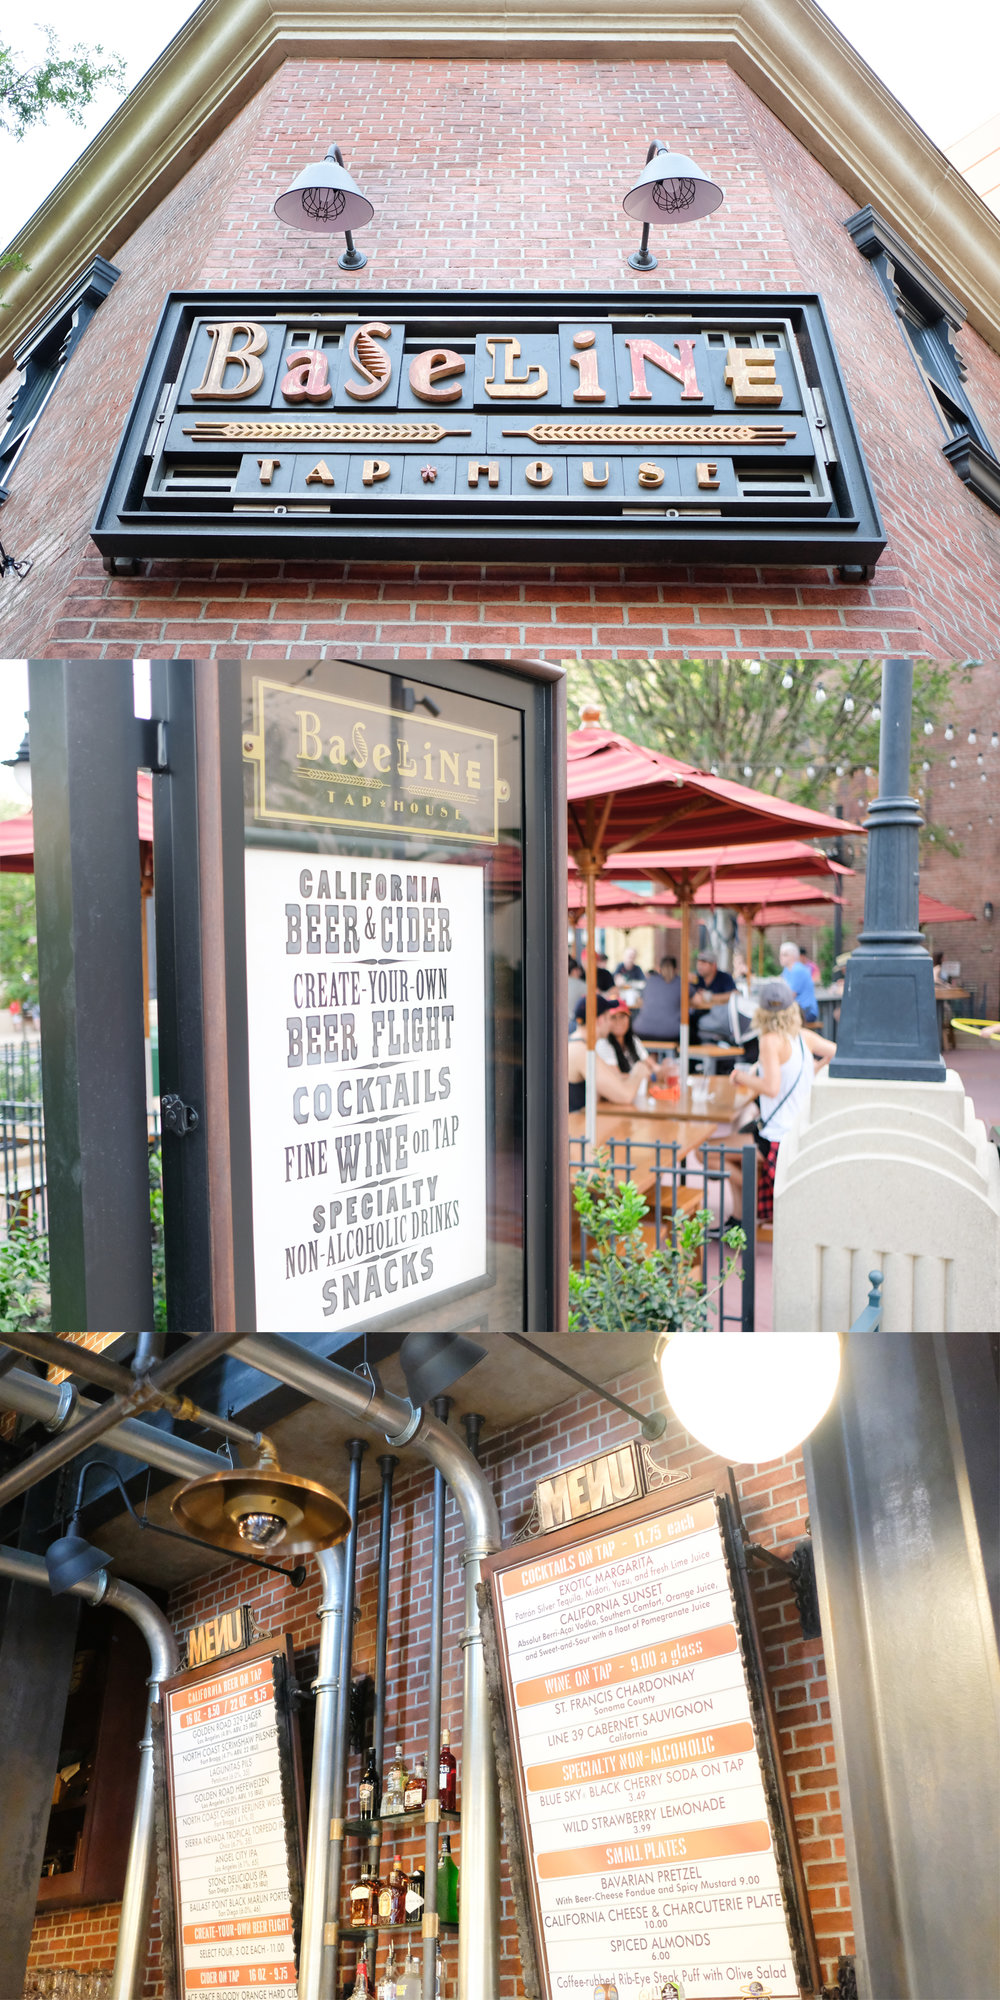 Baseline Tap House at Hollywood Studios